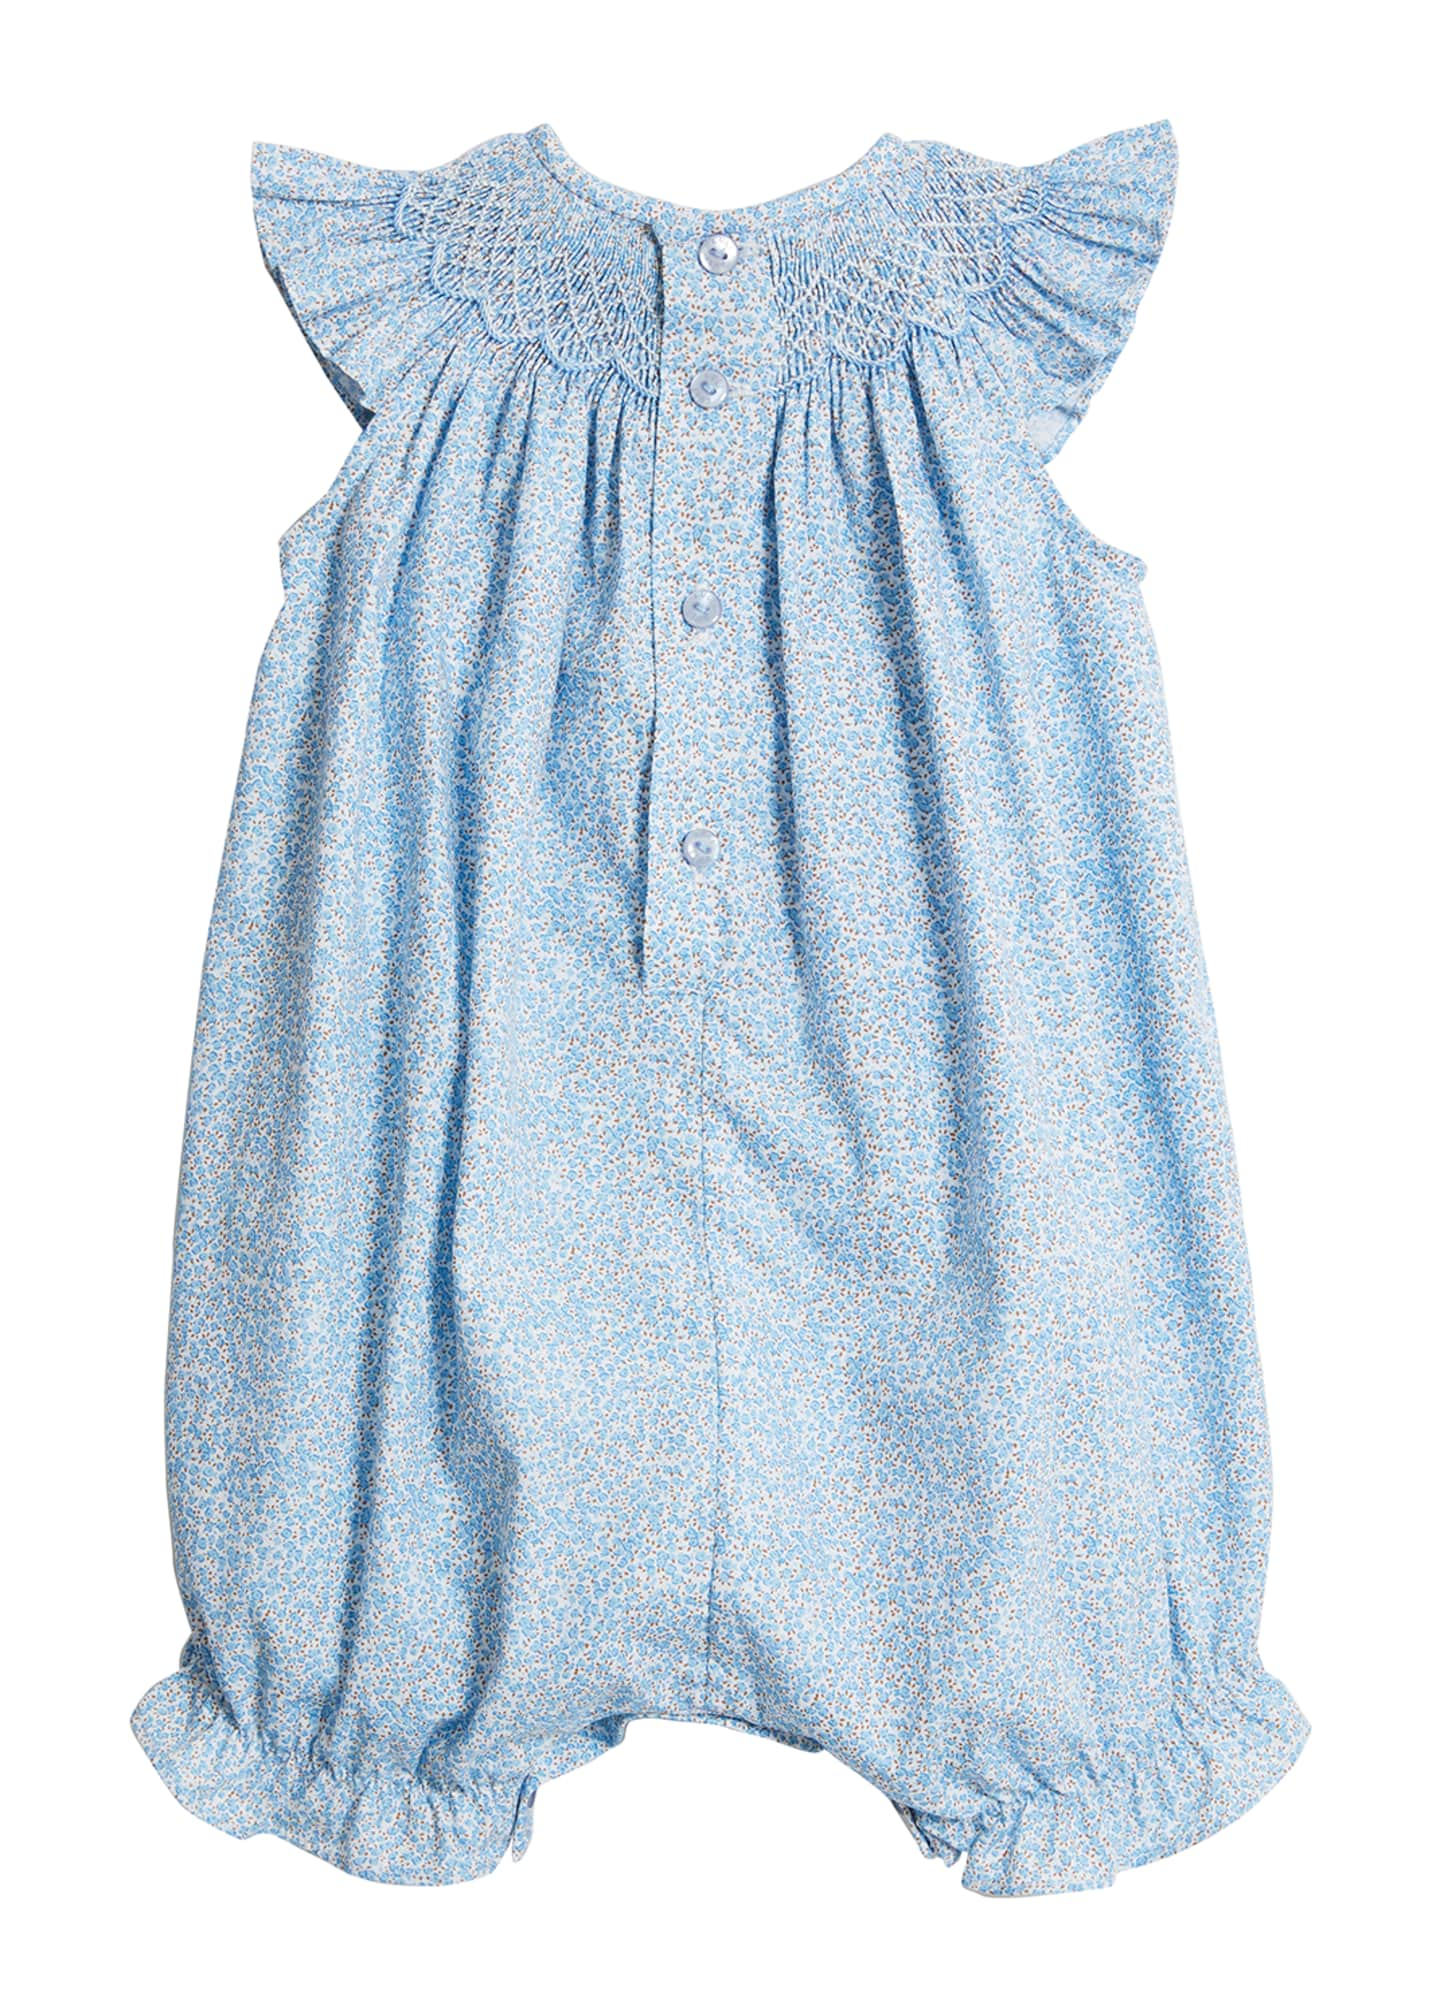 Image 2 of 2: Blue Floral Smocked Bubble Romper, Size 3-24 Months